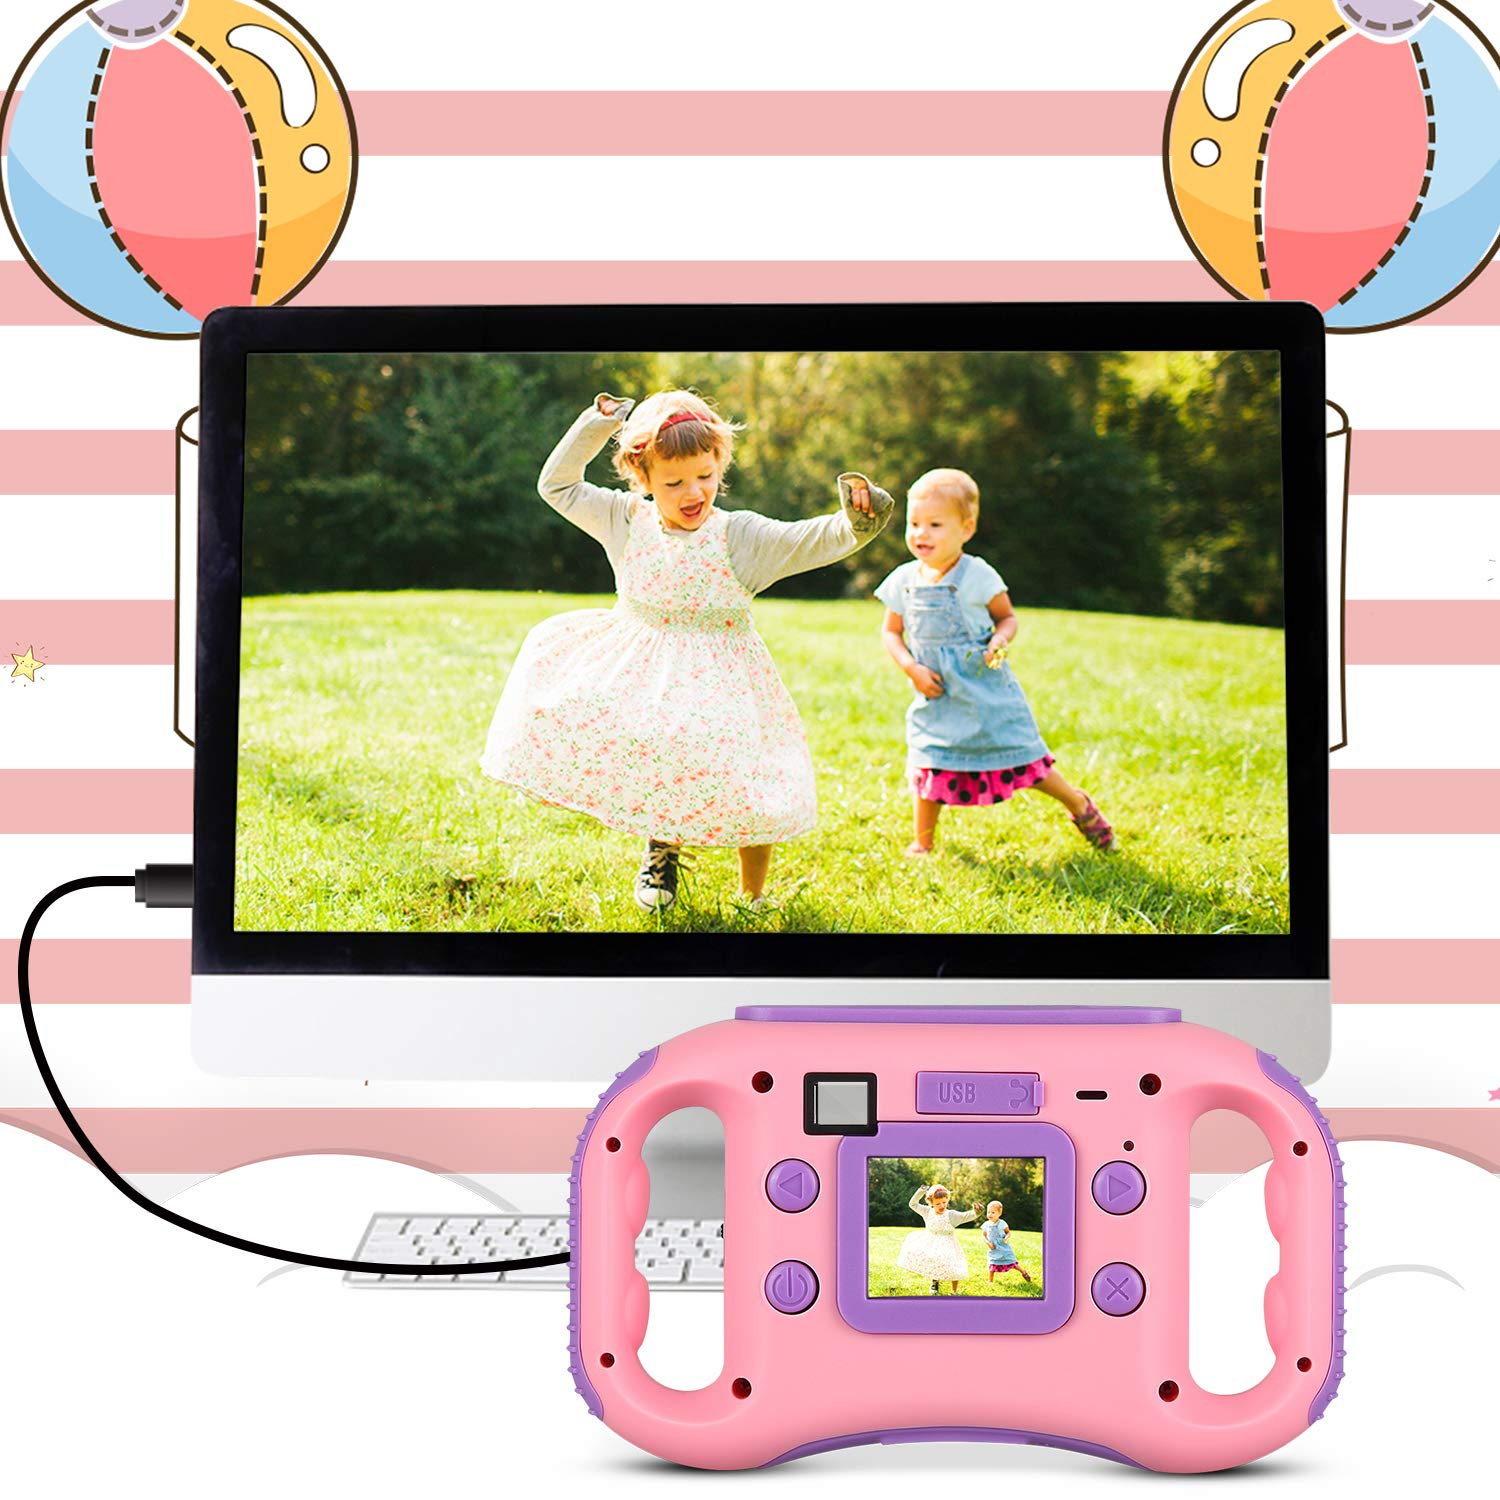 AGM Kids Camera for Girls & Boys, 1.77Inch Children Video Recorder Toddler Digital Camera,Creative Birthday Children's Day Gifts (Pink) by AGM (Image #1)